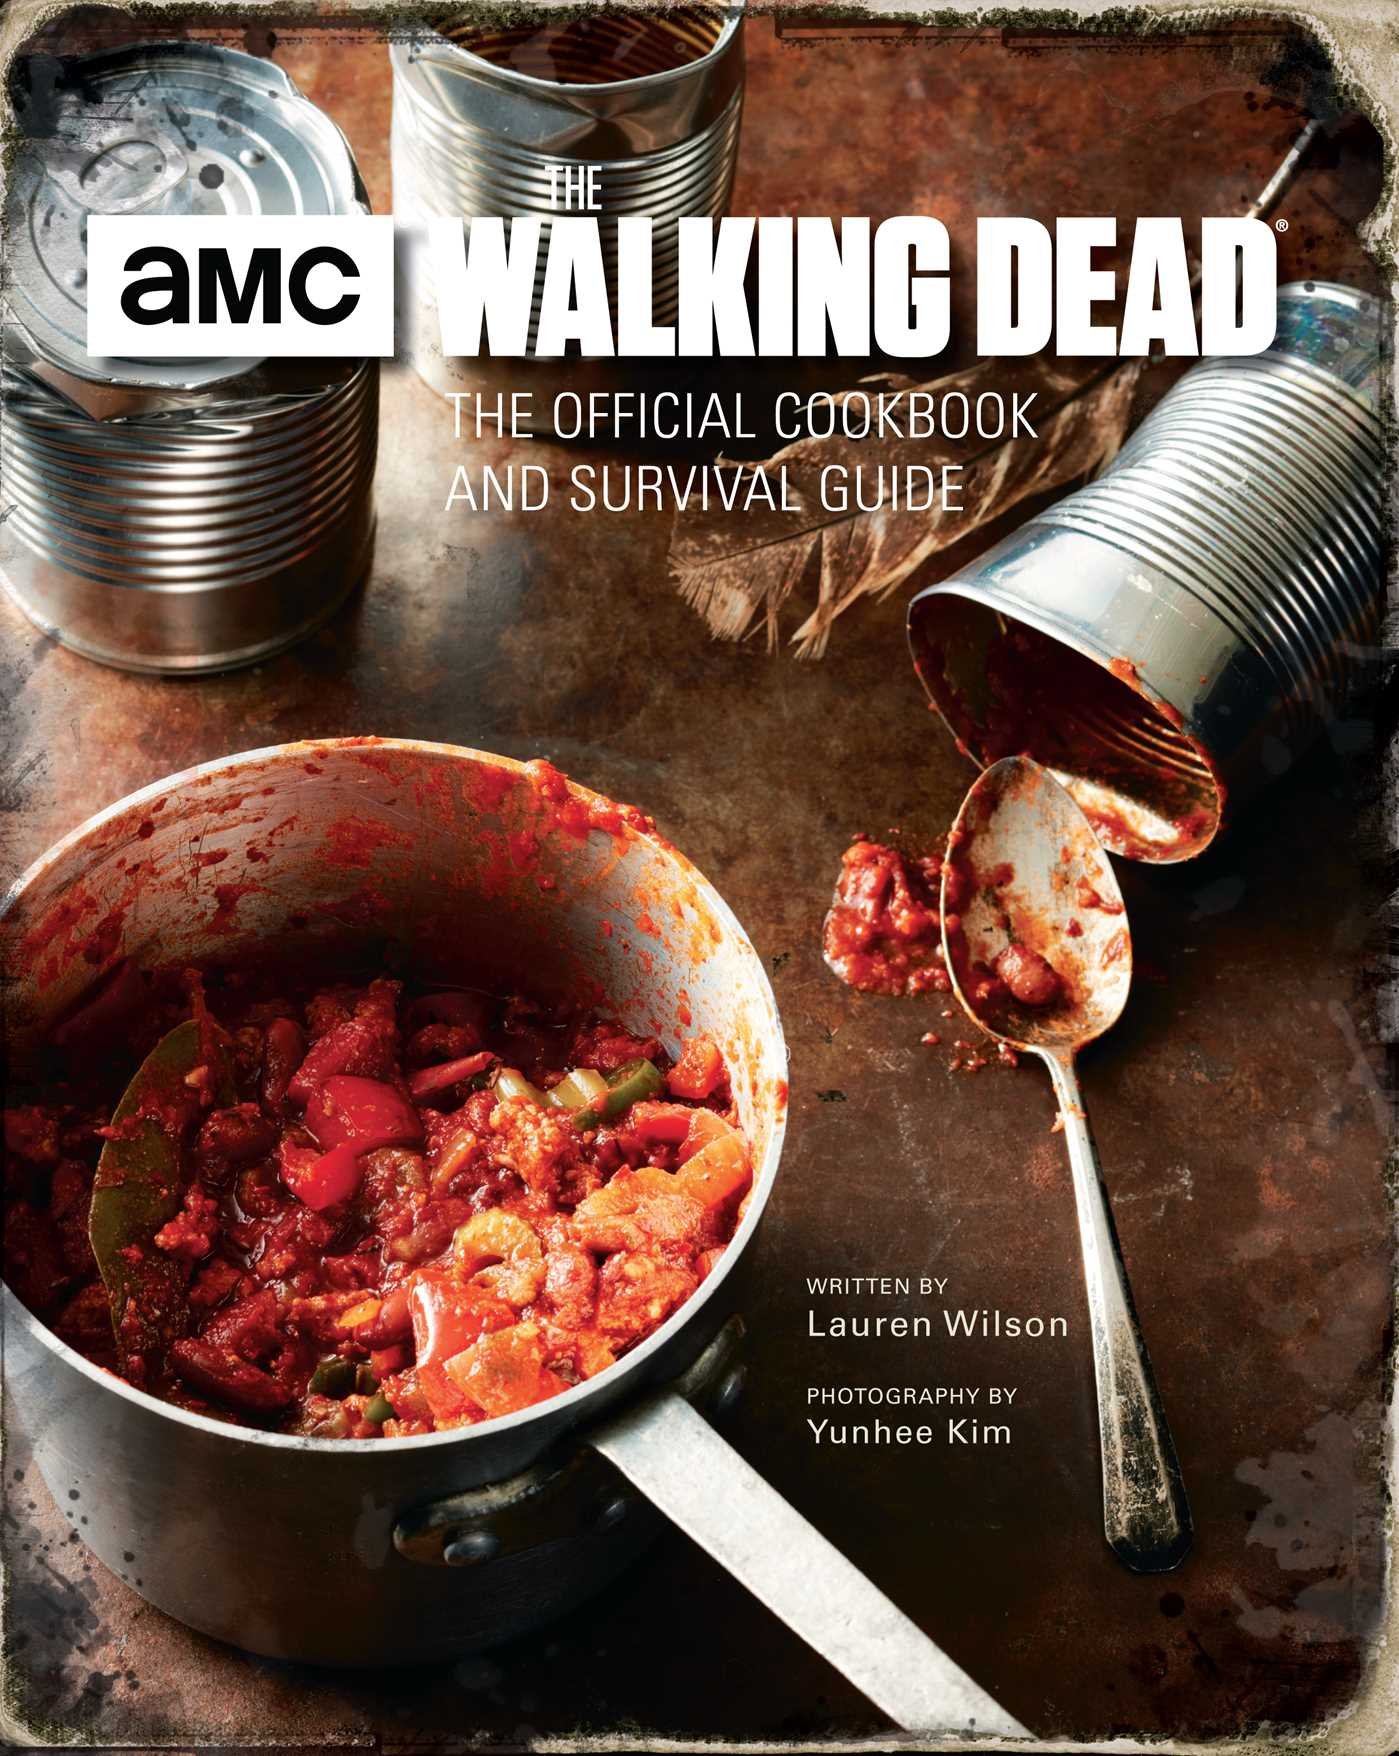 The walking dead the official cookbook and survival guide 9781683830788 hr